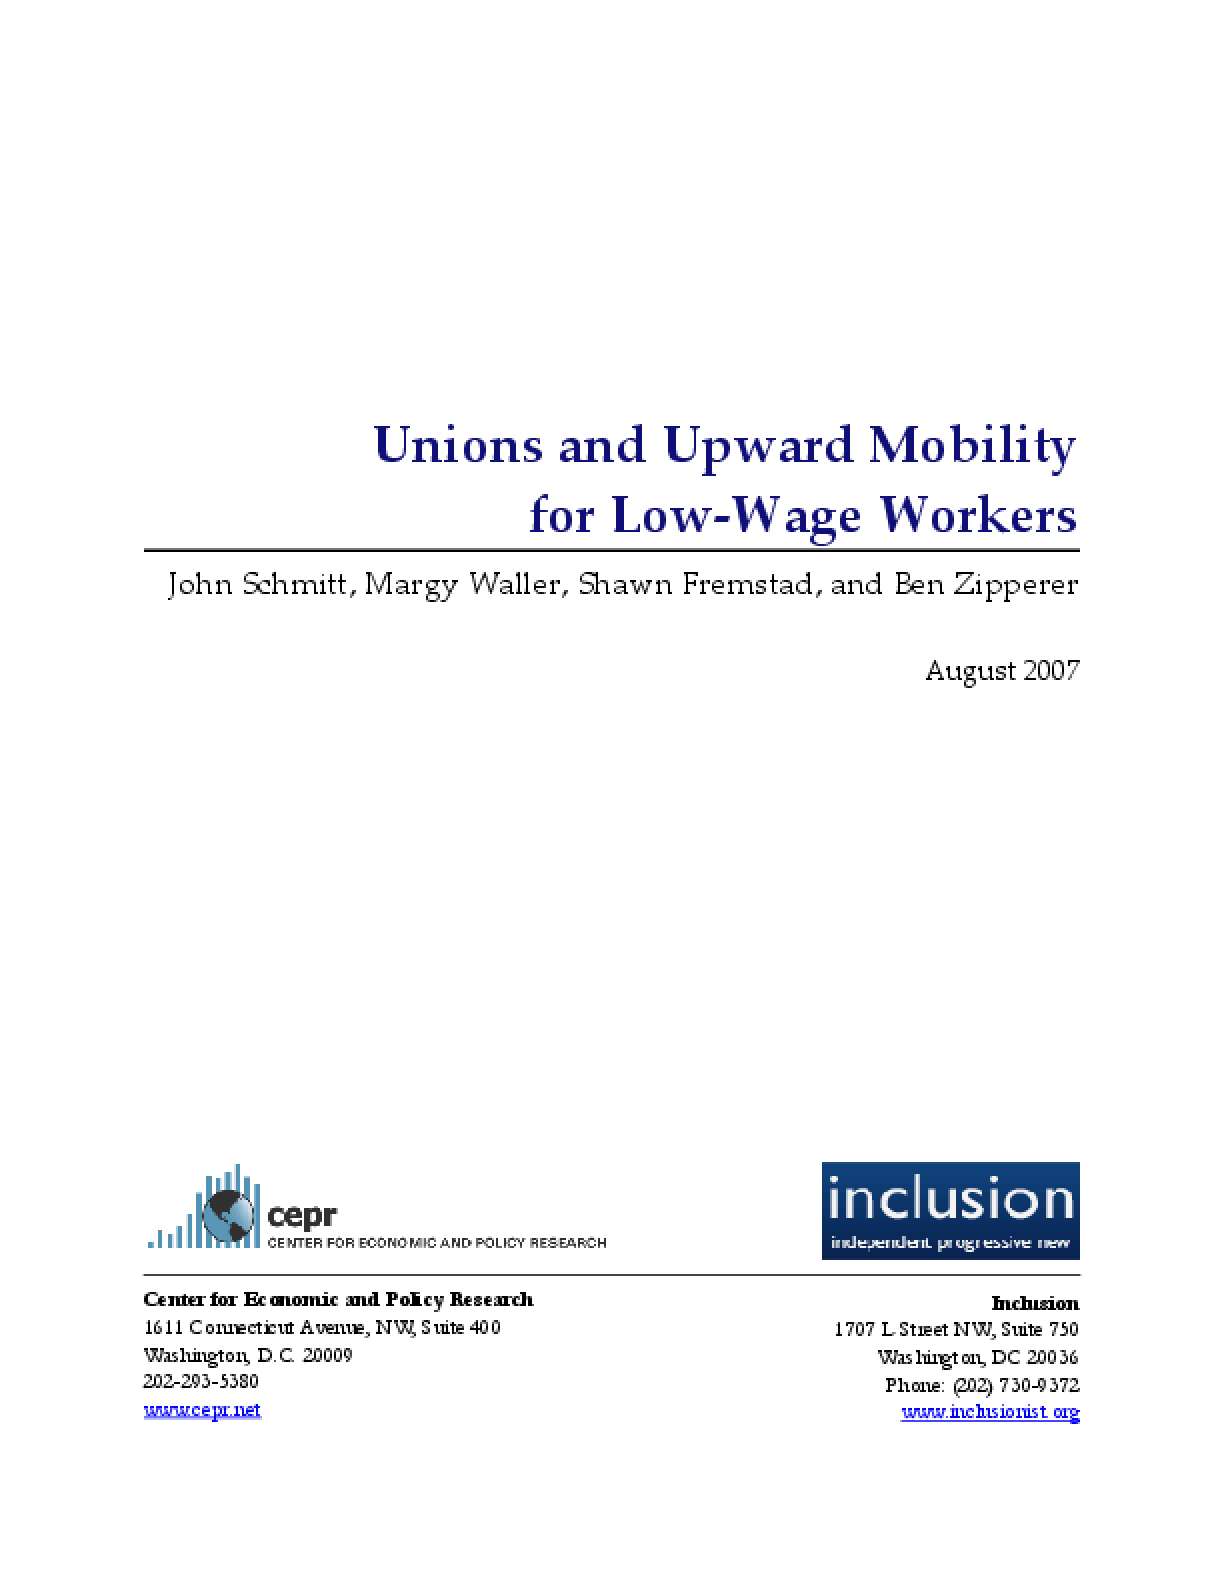 Unions and Upward Mobility for Low-Wage Workers